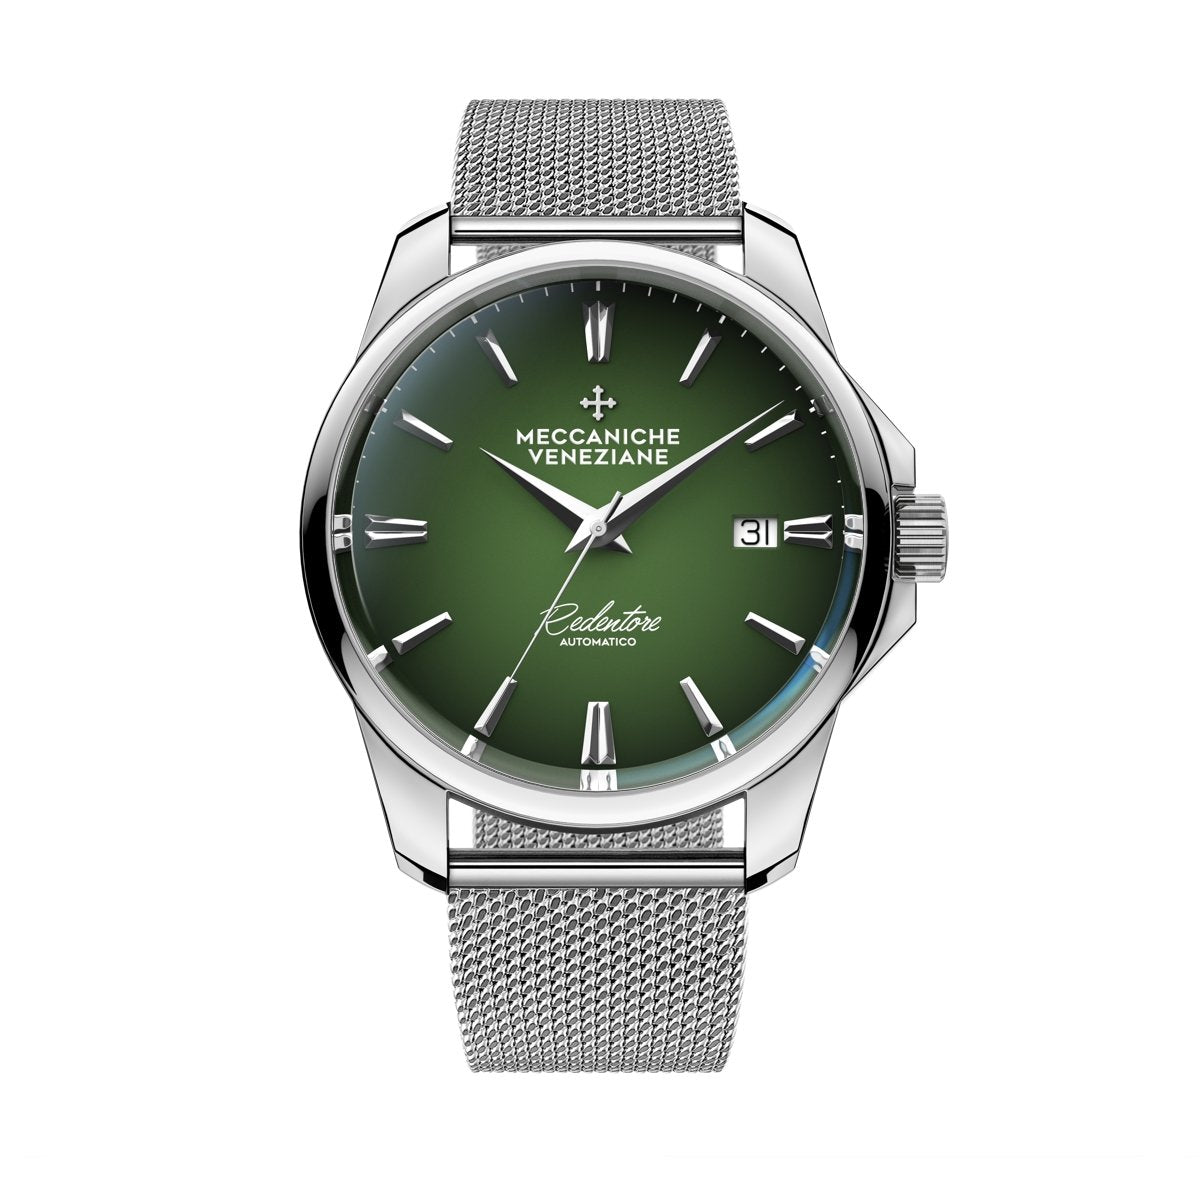 Meccaniche Veneziane Redentore 4.0 Watch Smeraldo Green - Watches & Crystals